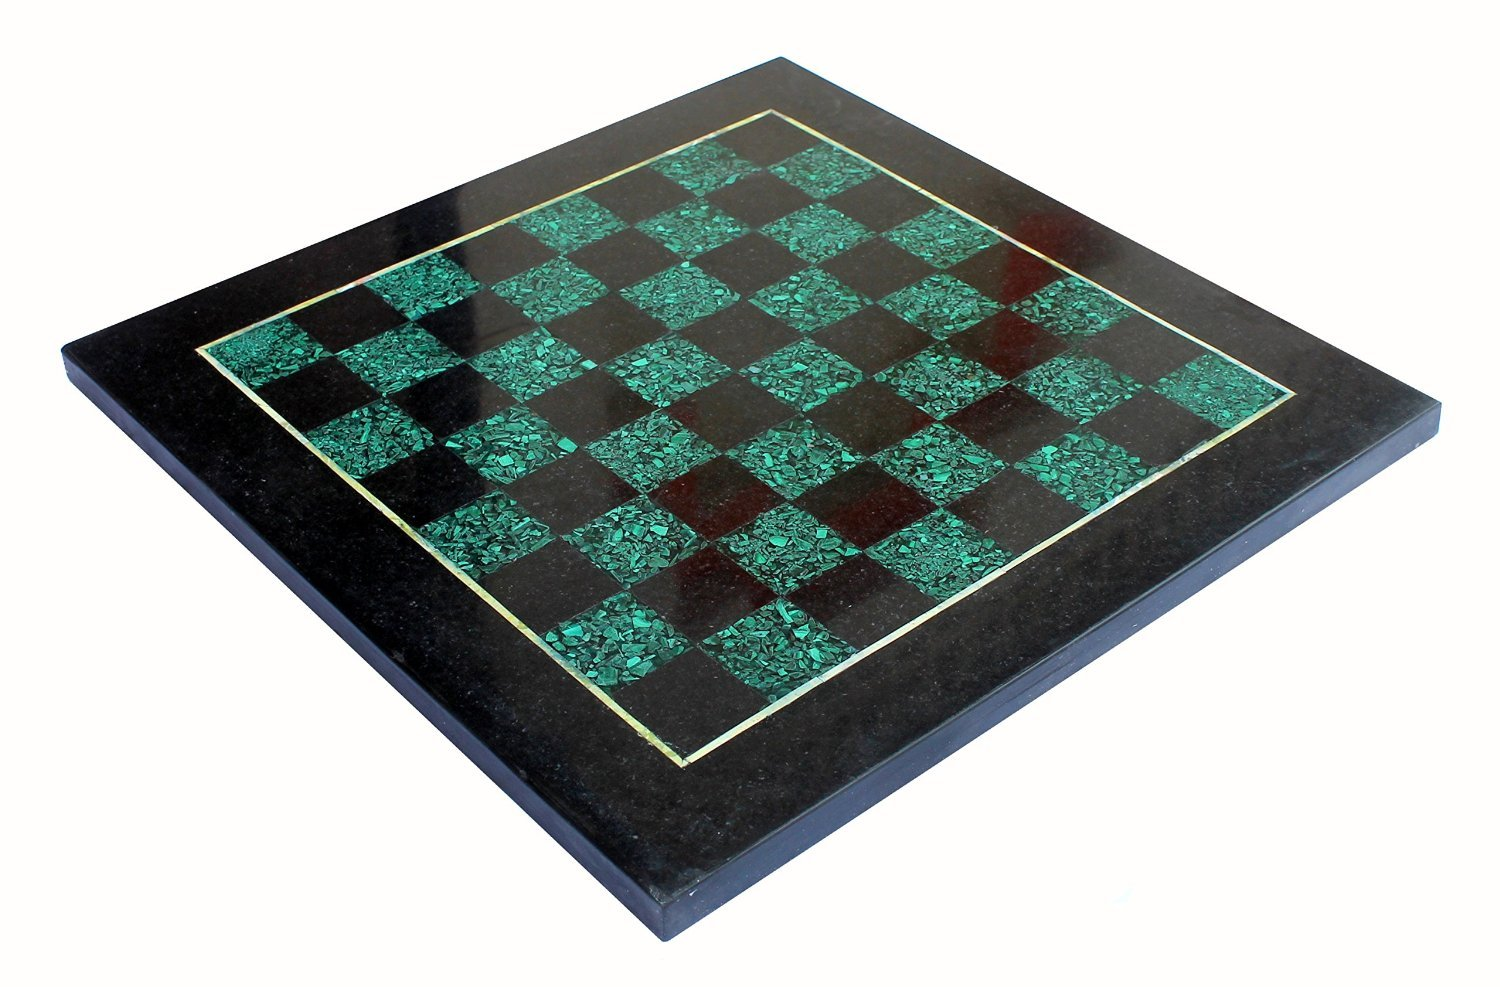 StonKraft 15'' X 15'' Collectible Black Natural Stone + Malachite & Marble Chess Board Without Pieces - Appropriate Wooden & Brass Chess Pieces Chessmen separately availabe by StonKraft Brand by StonKraft (Image #1)